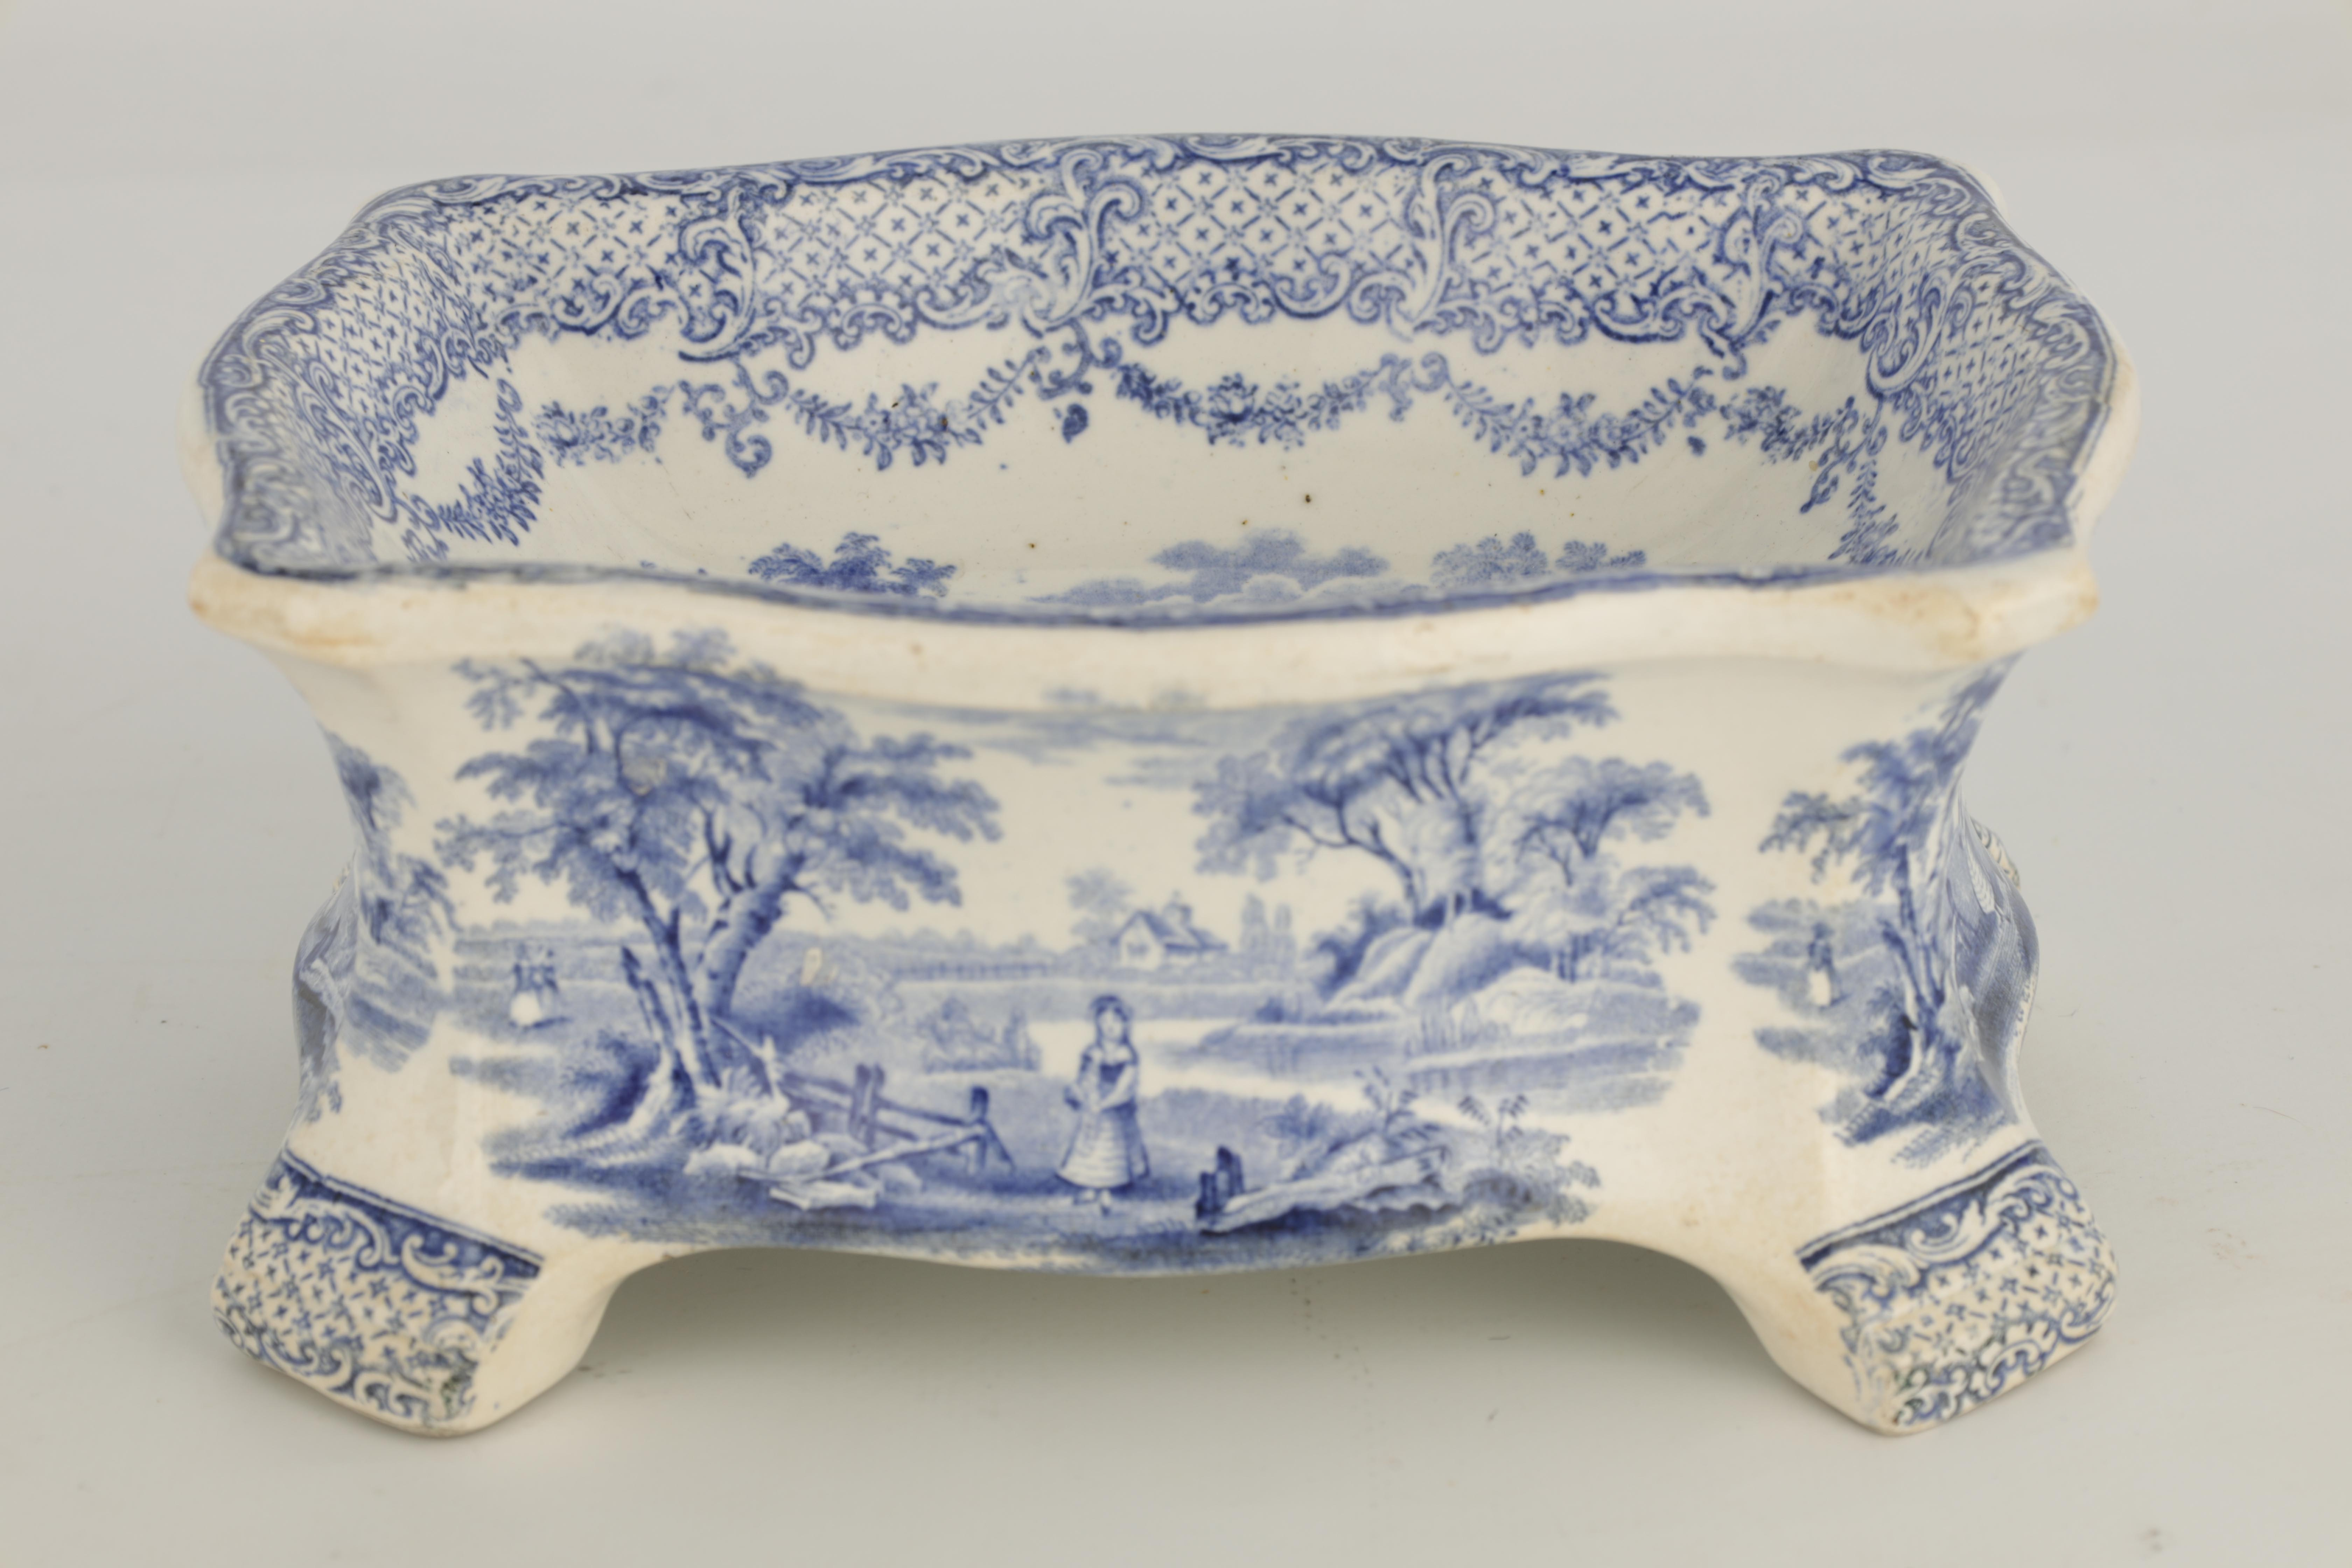 A RARE 19TH CENTURY RIDGWAY BLUE AND WHITE POTTERY DOG BOWL decorated with landscape scenes - Image 3 of 7